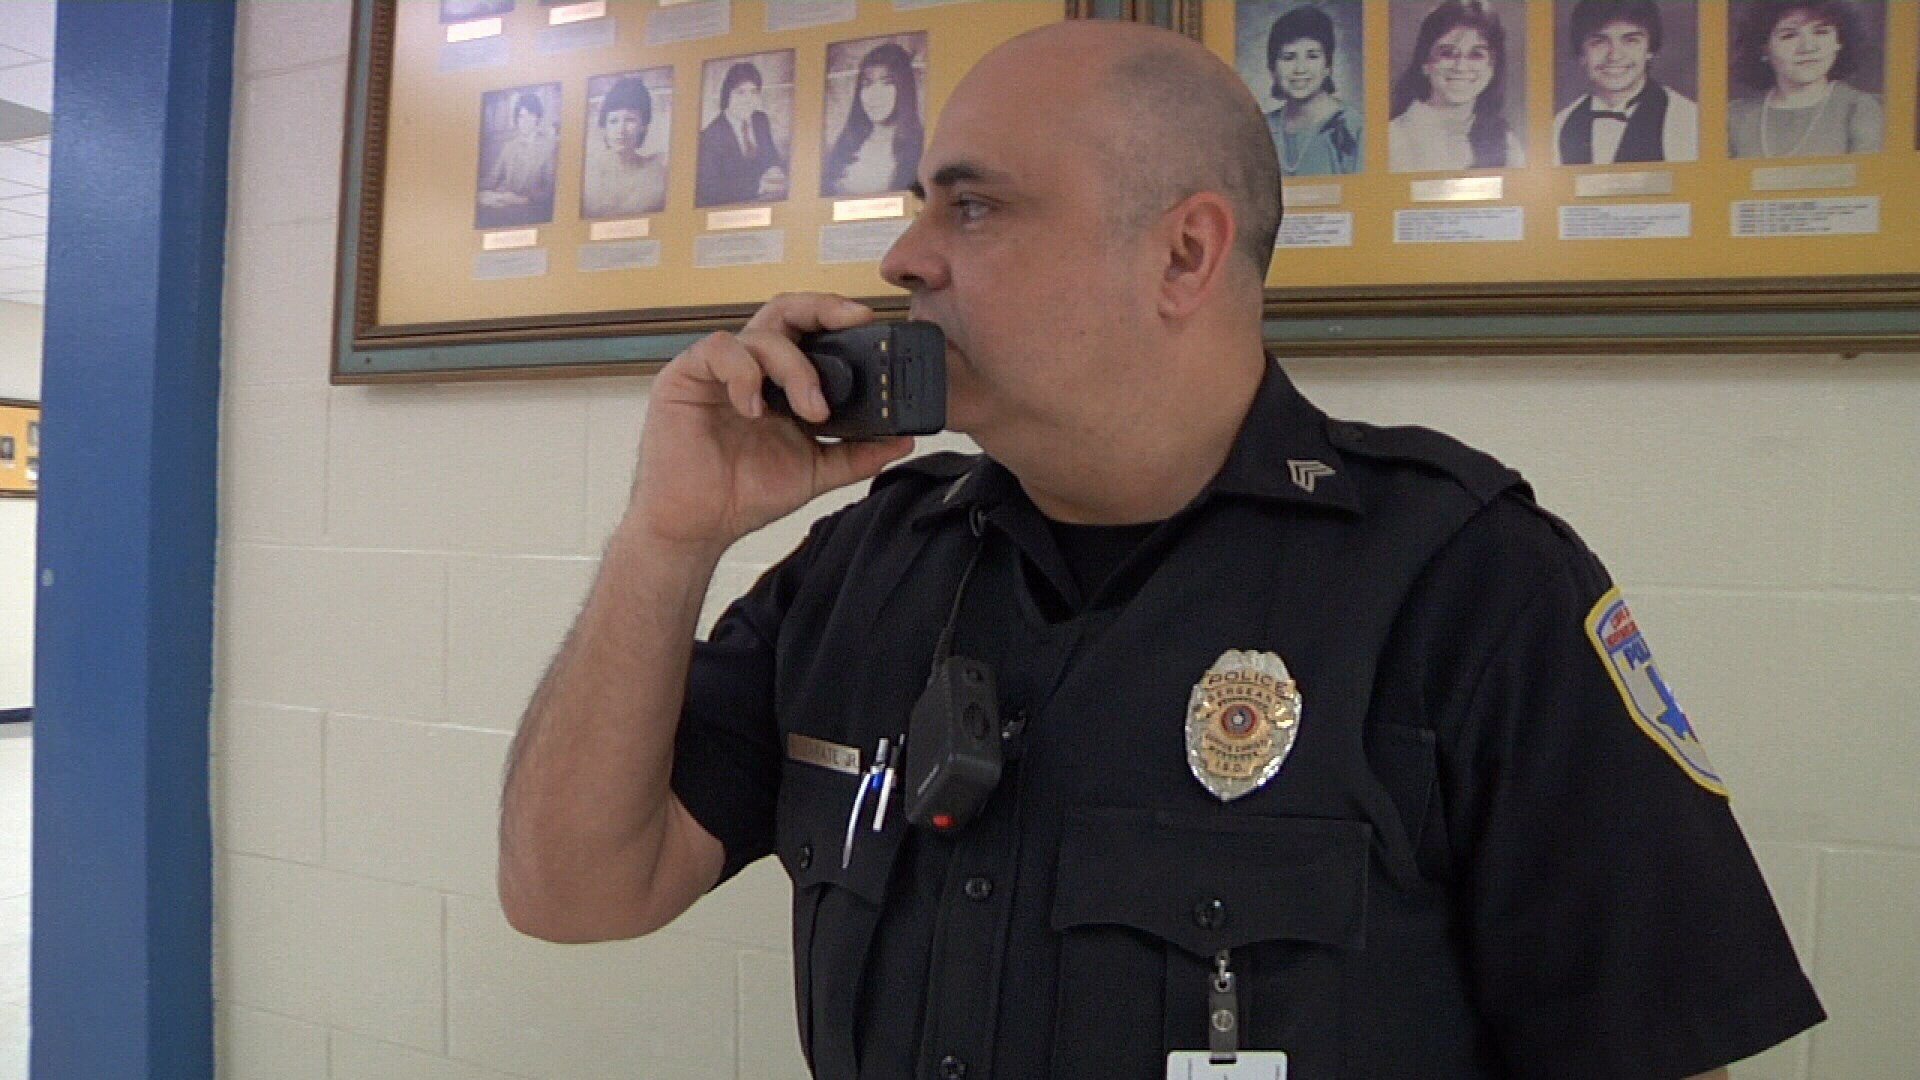 CCISD already has police officers on campus and will increase active shooter drills.